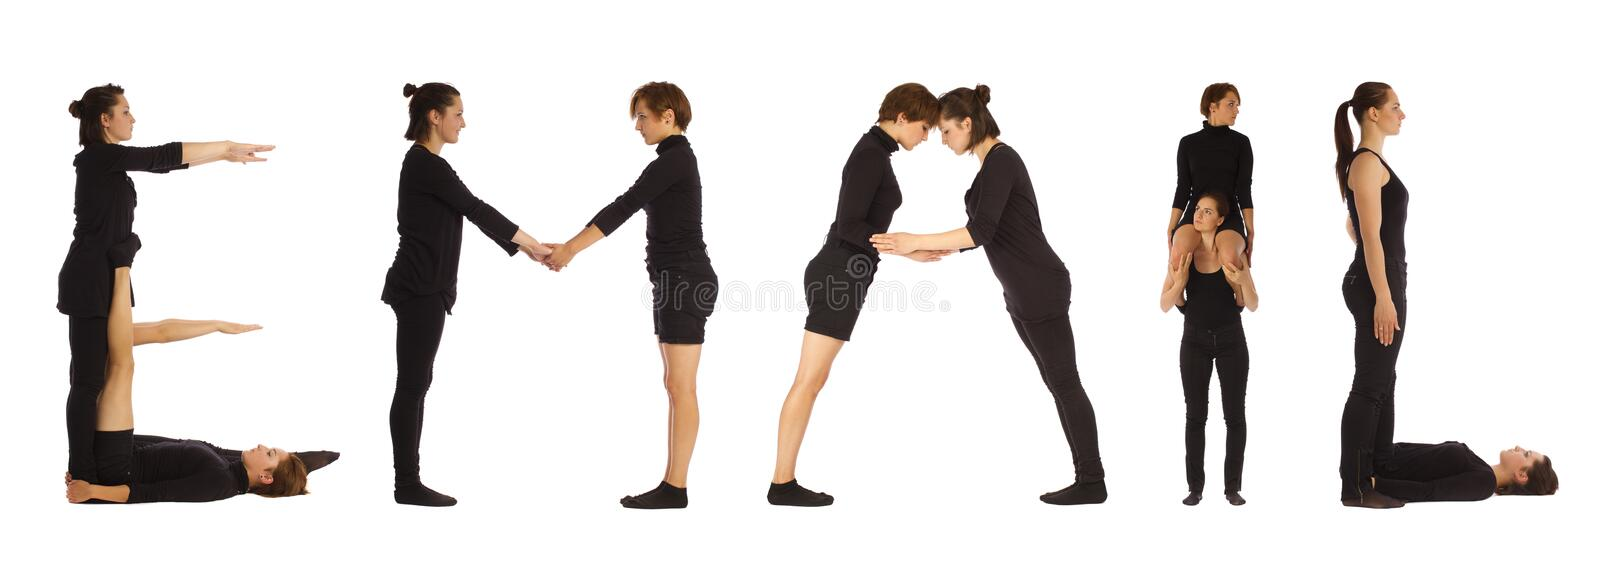 Black dressed people forming word EMAIL royalty free stock photo